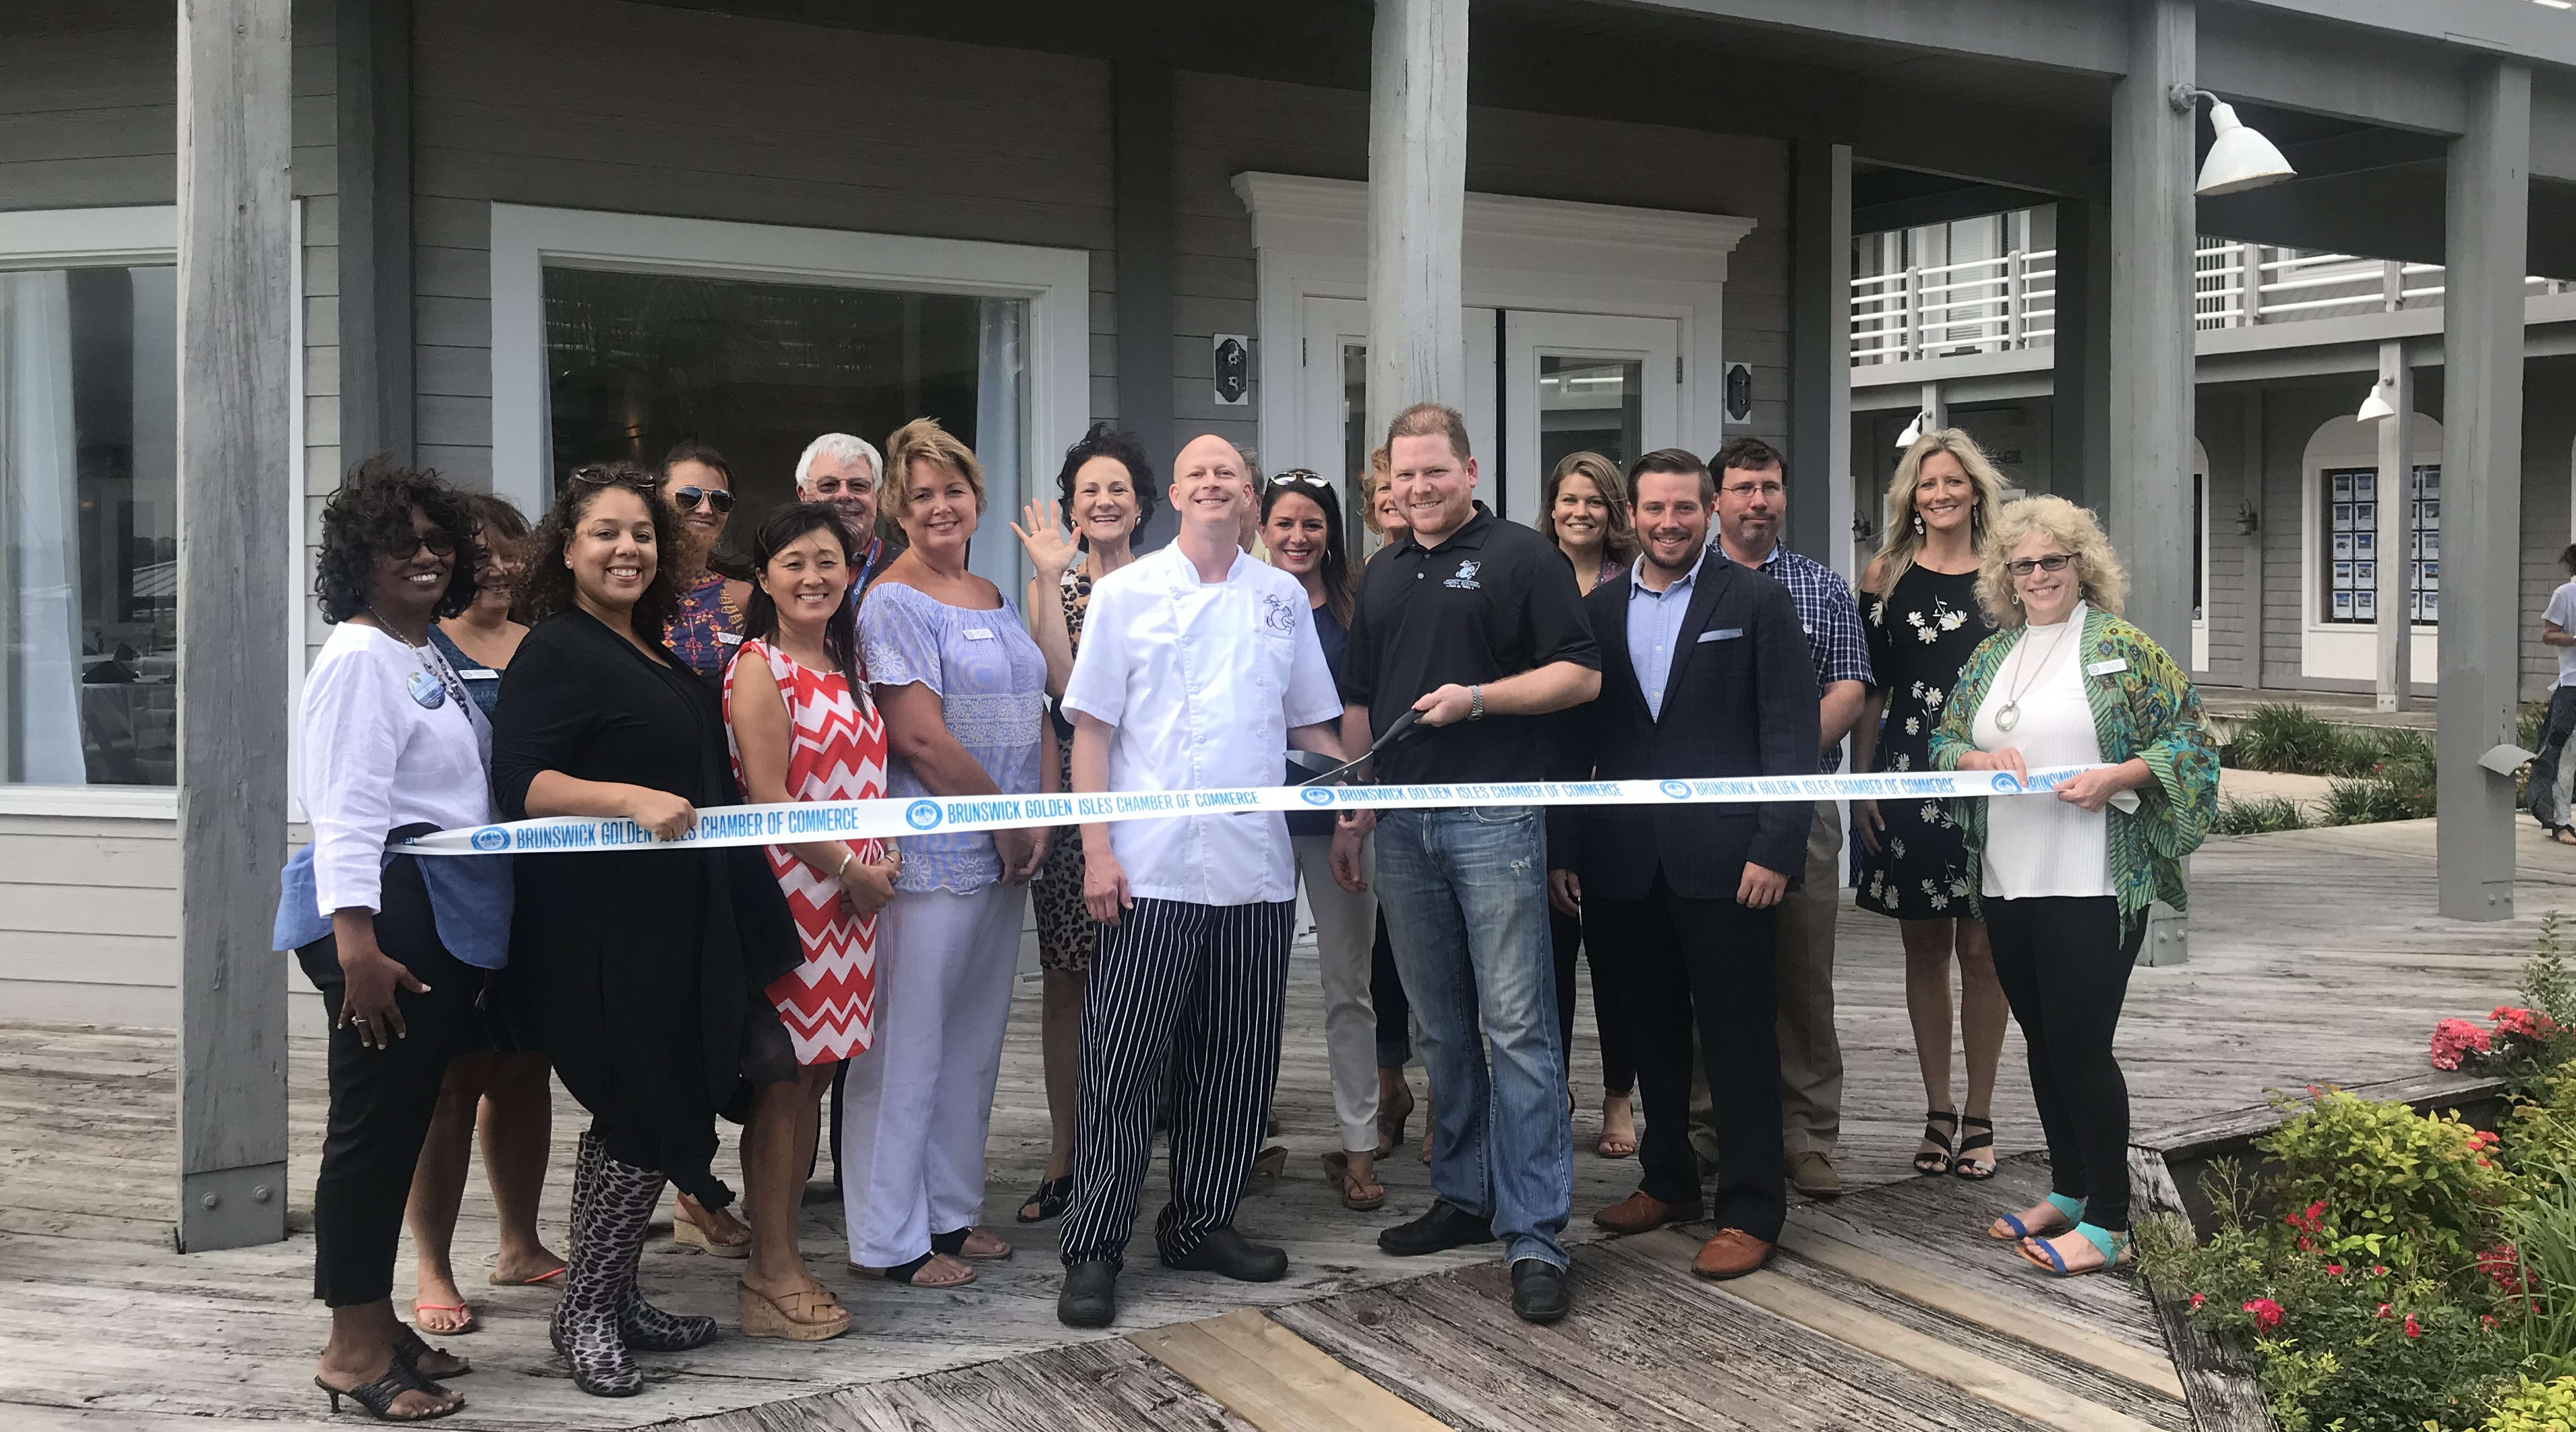 coastal-kitchen-ribbon-cutting-05-2018.JPG-w3821.jpg